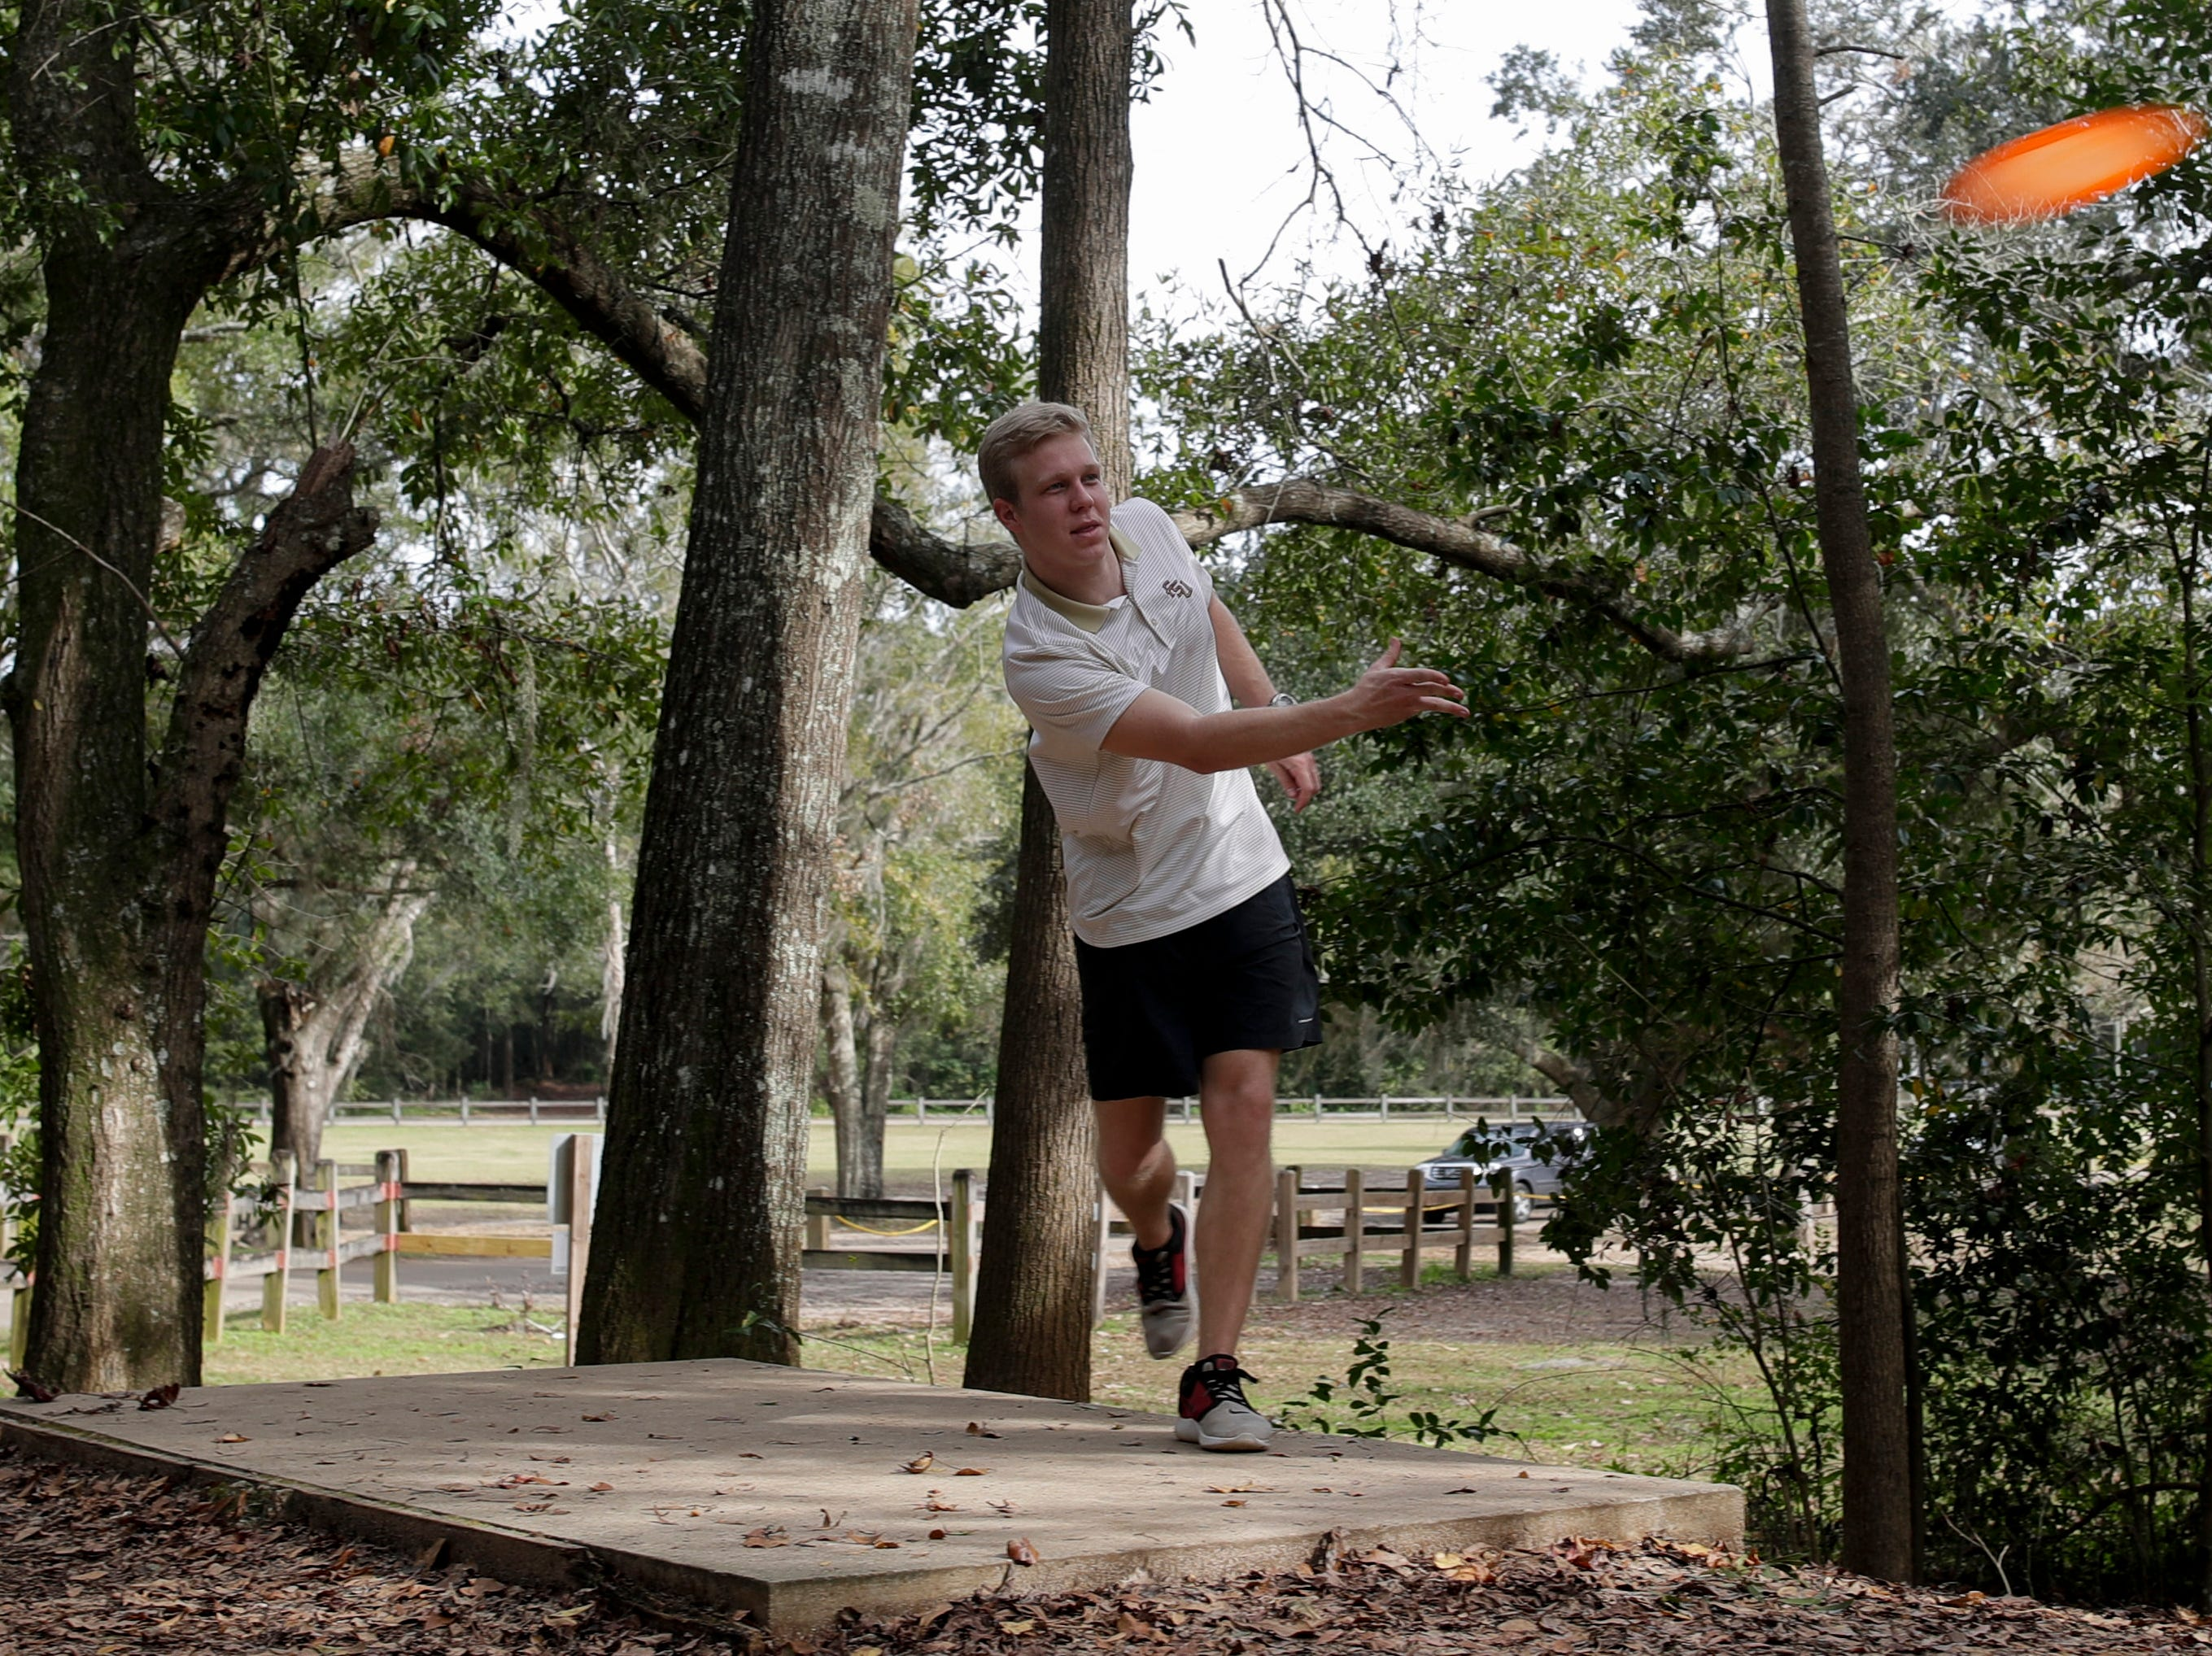 Trace Hunter tees off on a disc golf hole at Tom Brown Park as temperatures reached about 75 degrees midday in Tallahassee Wednesday, Jan. 2, 2019.